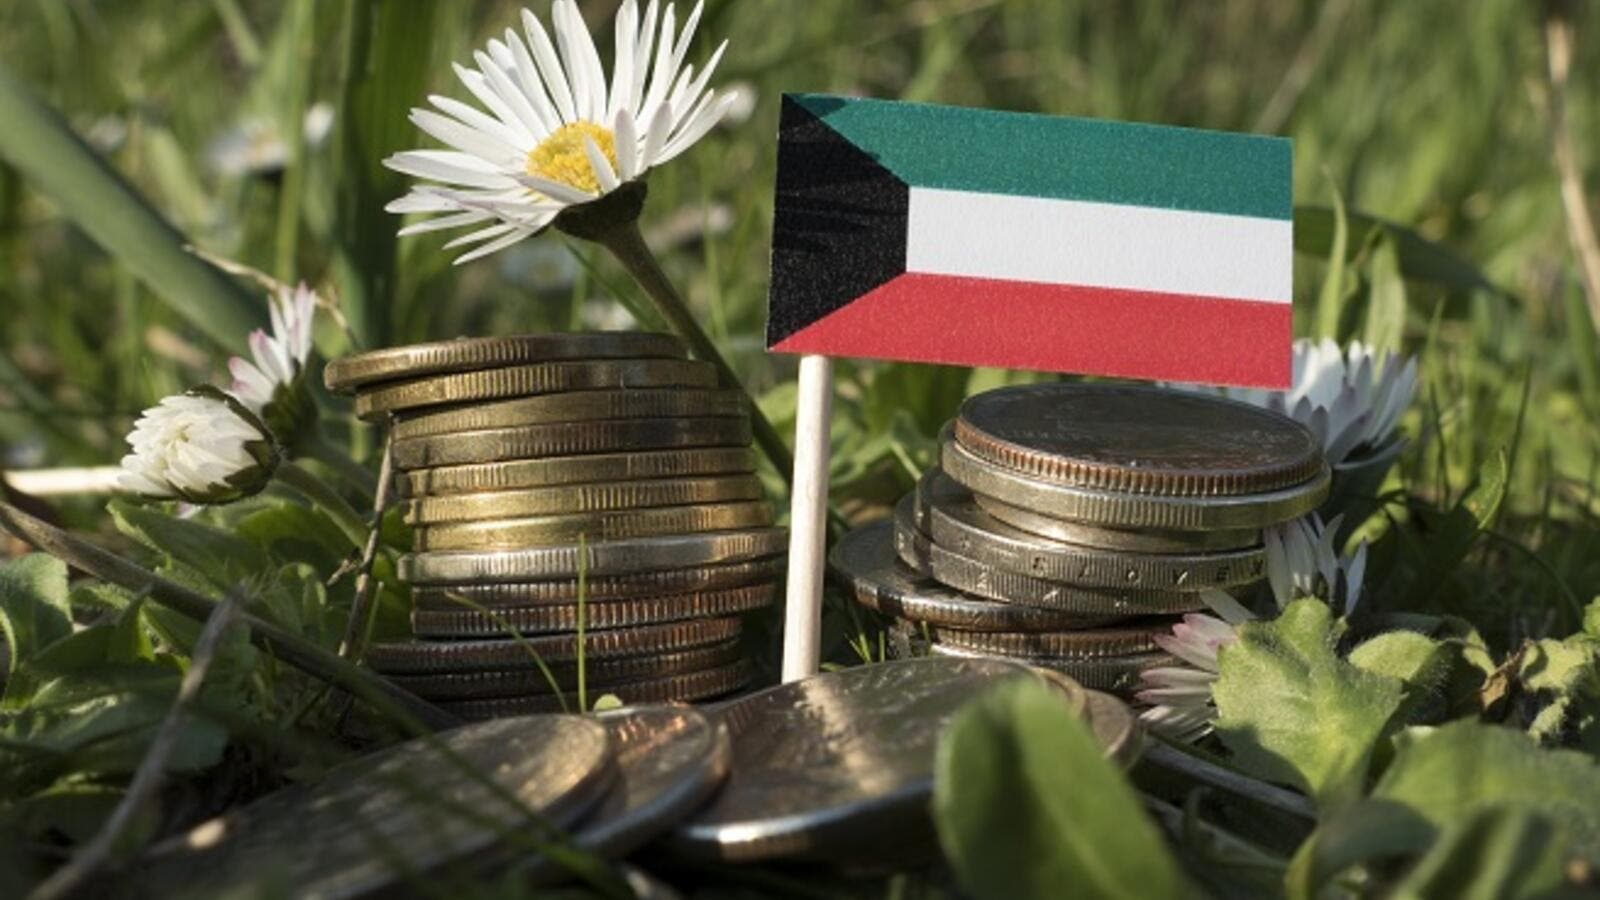 Kuwait has called for frozen funds to be returned. (Shutterstock)